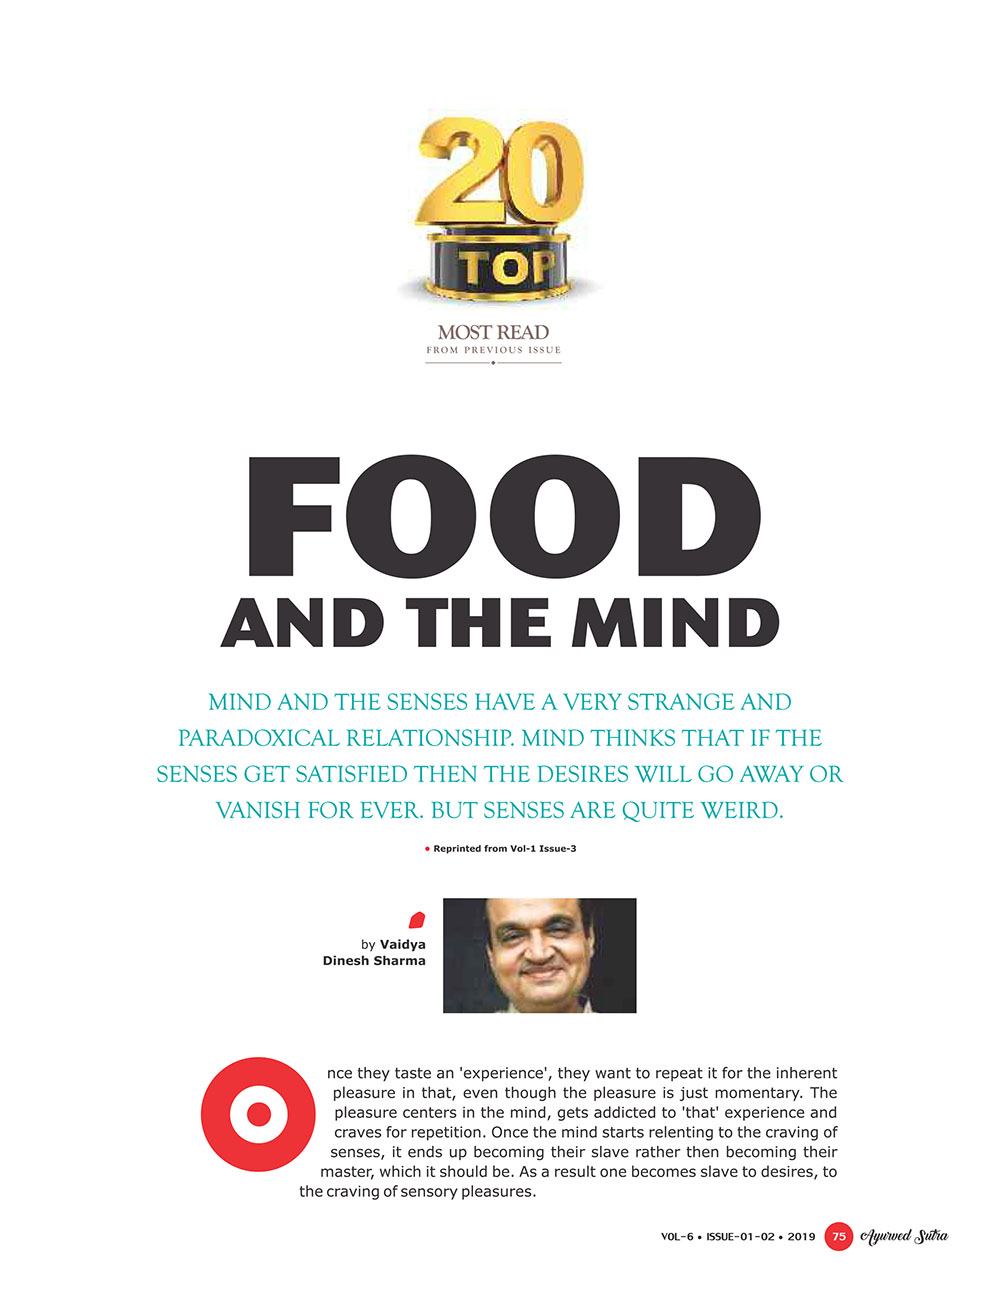 Ayurvedsutra Vol 06 issue 01 02 77 - Food and the Mind